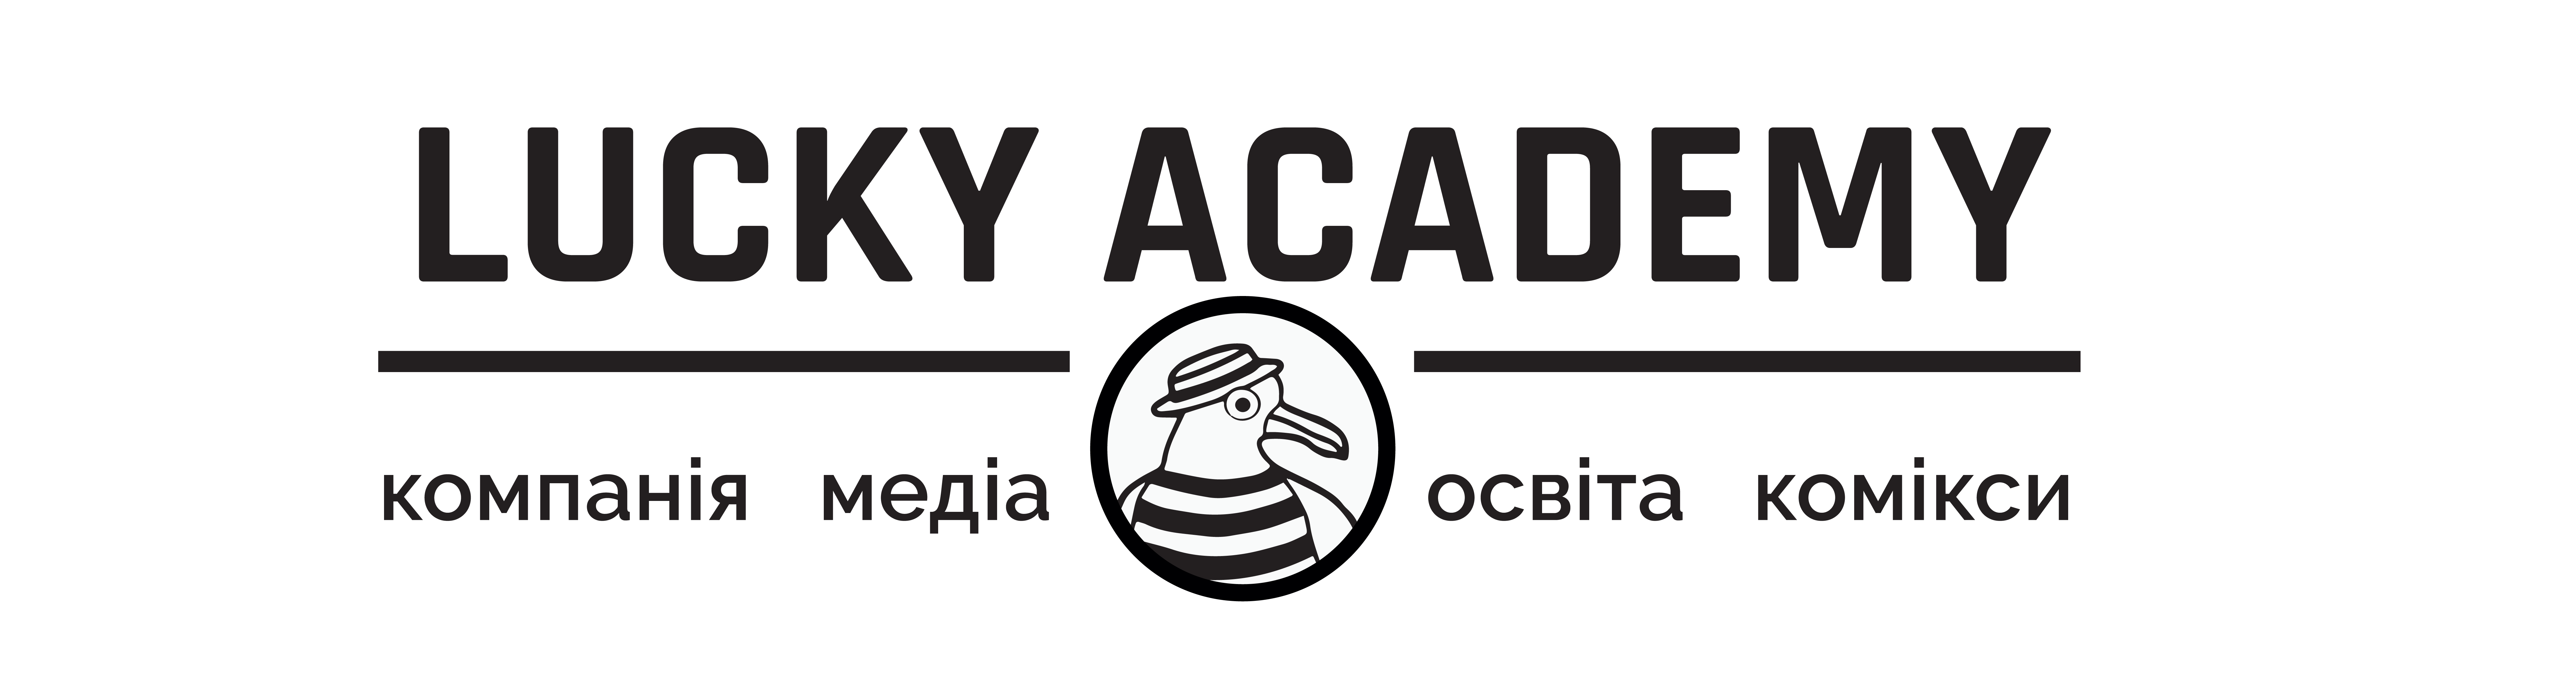 Lucky Academy logo screenwriting courses for teens Kiev